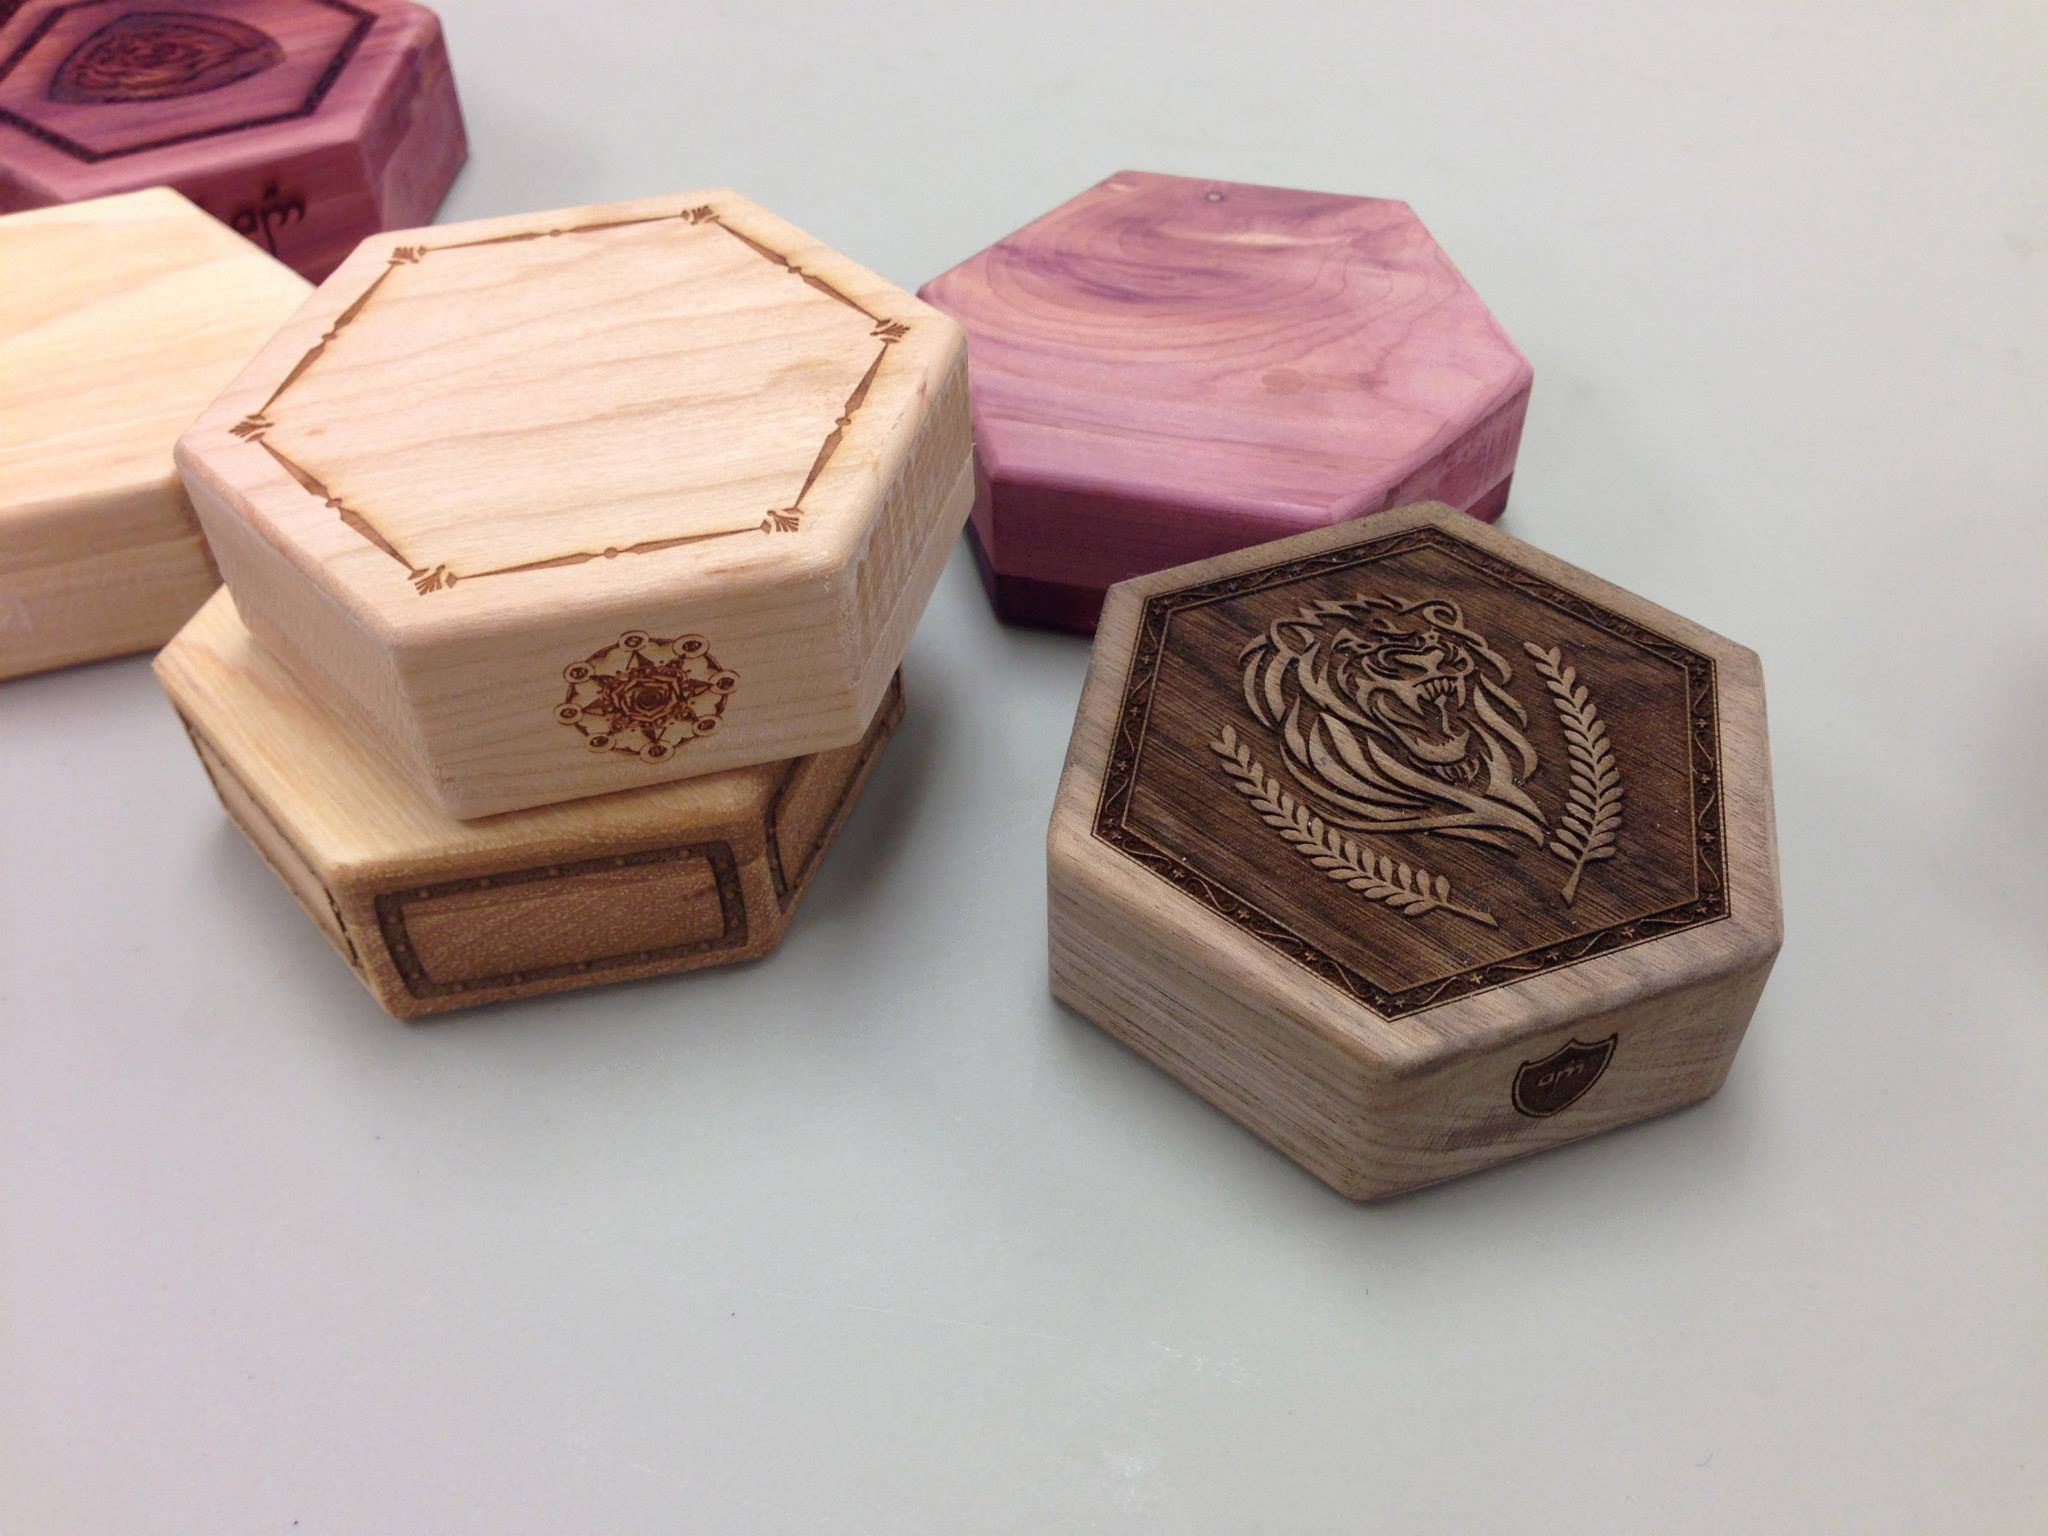 board-game-hex-chests-001.jpg